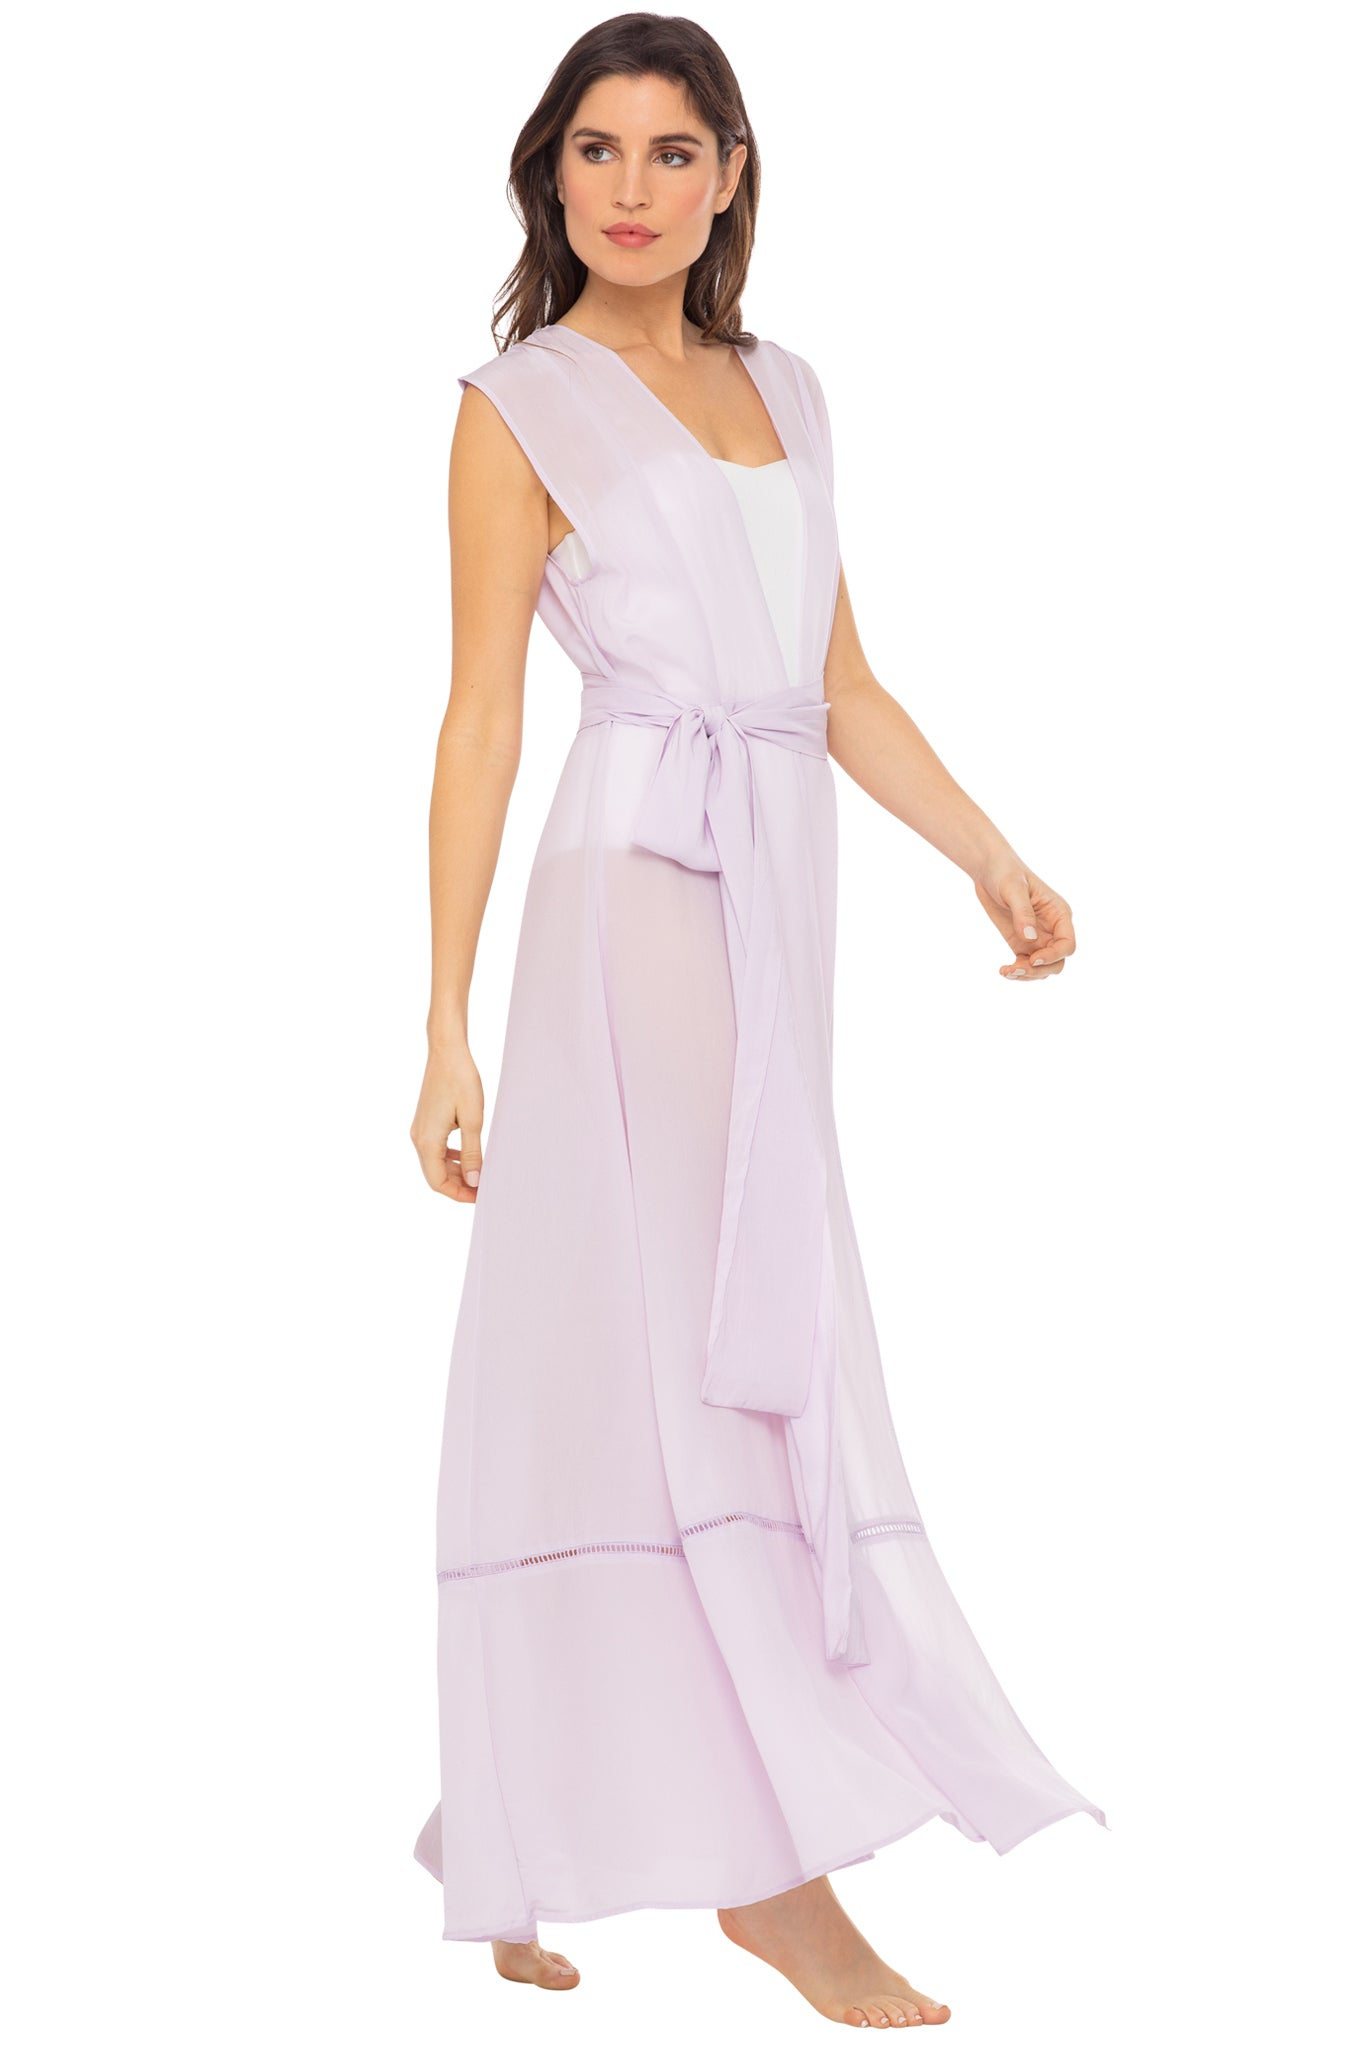 Audrey sleeveless maxi cover-up in lavender - side view